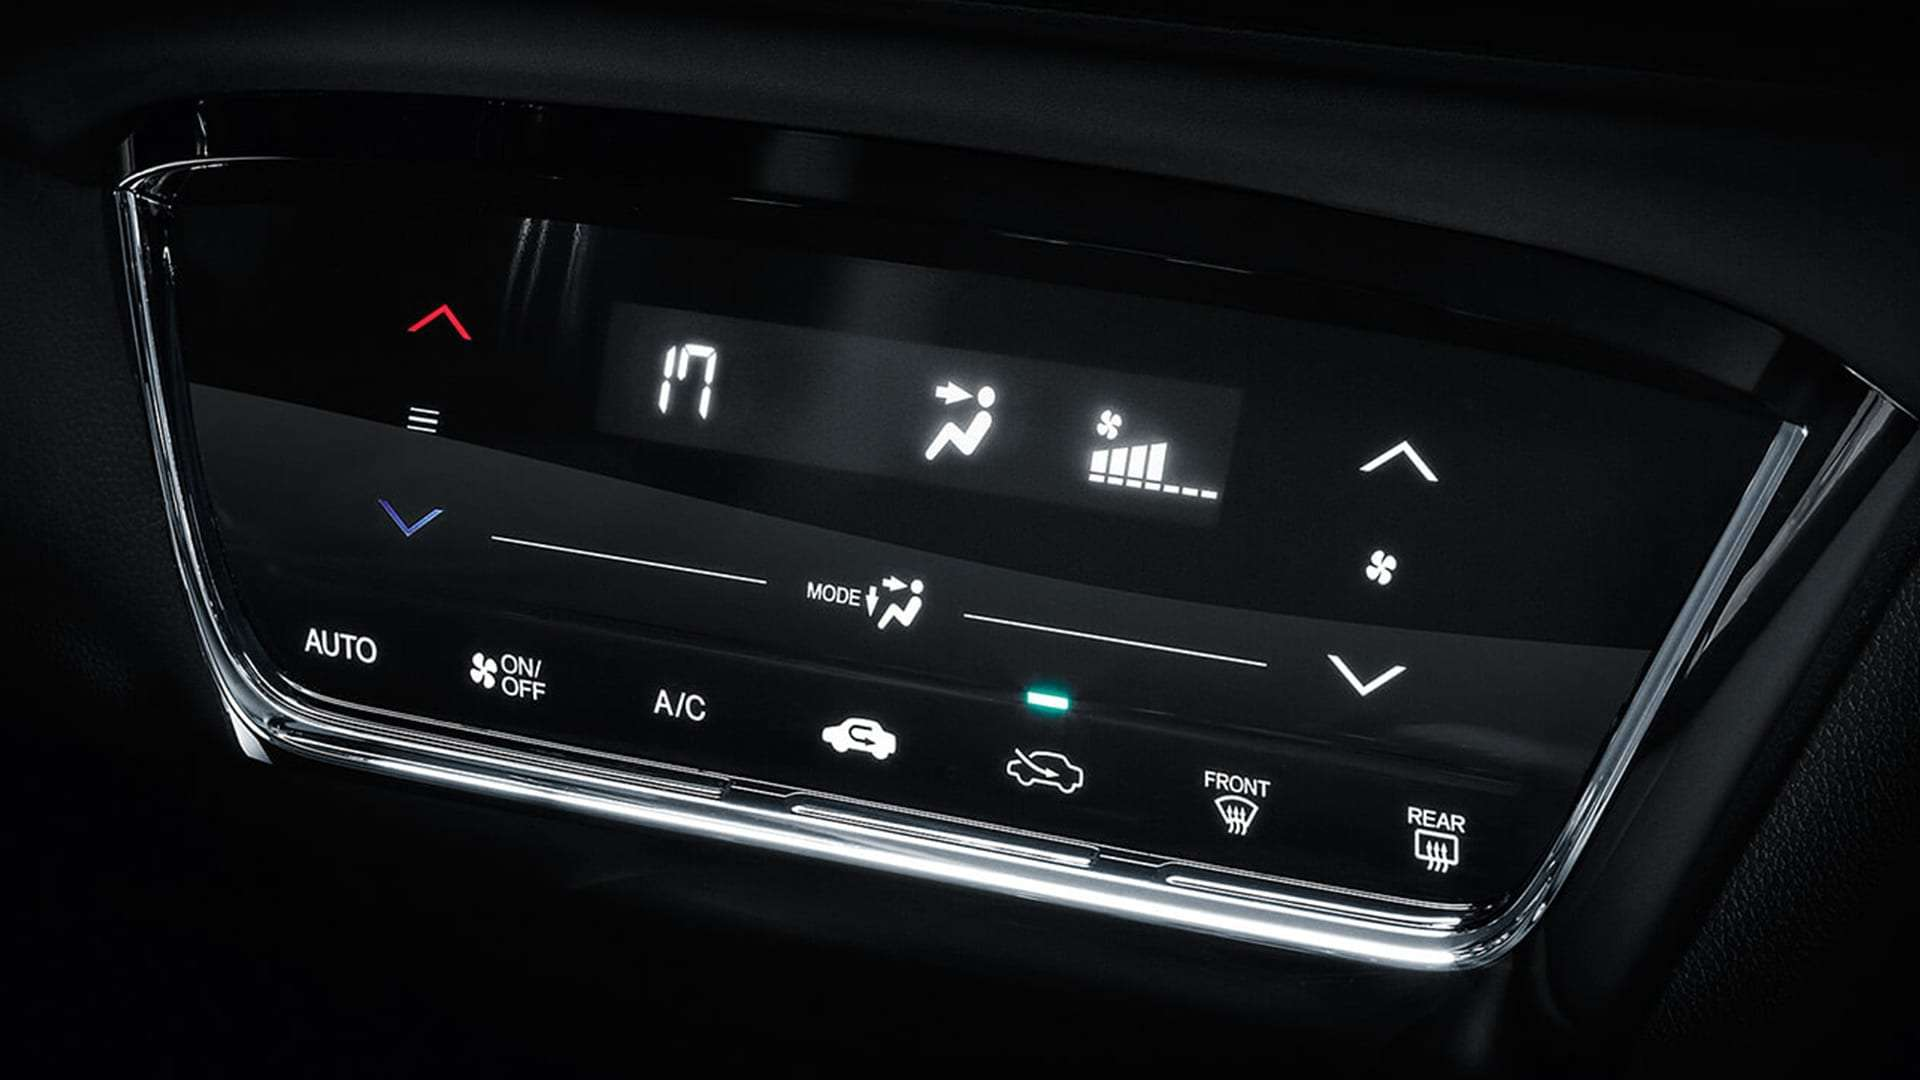 HR-V - Ar condicionado digital full touchscreen